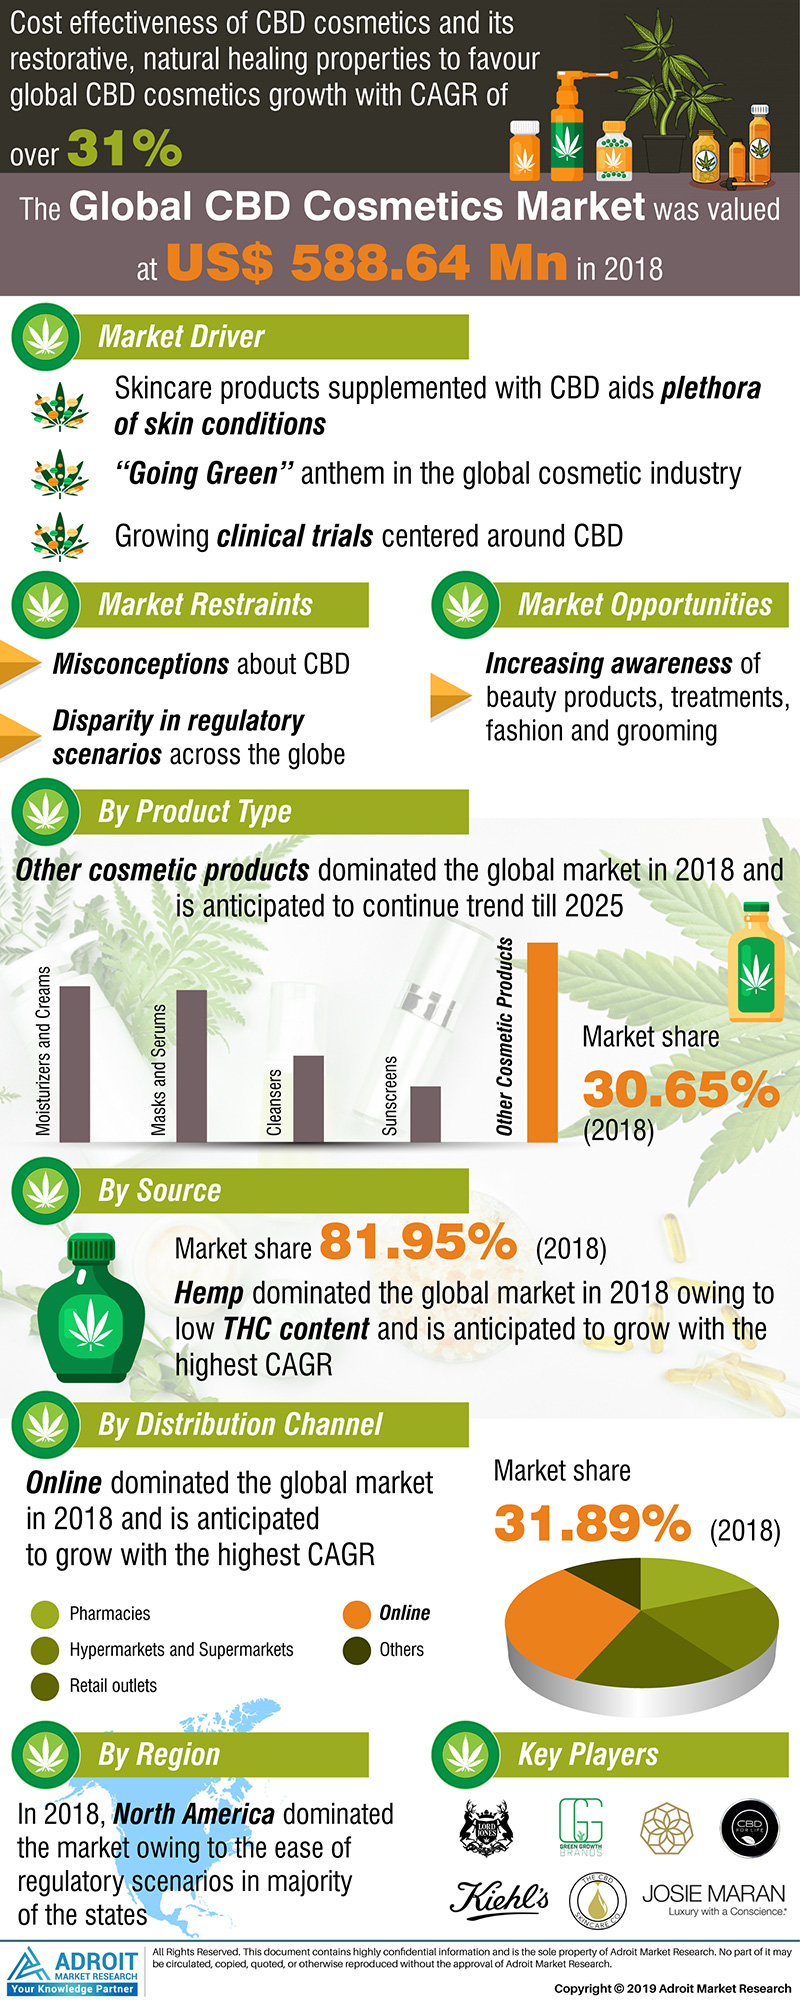 Global CBD Cosmetics Market Size 2017 By Product Type, Source, Distribution Channel, Region and Forecast 2019 to 2025